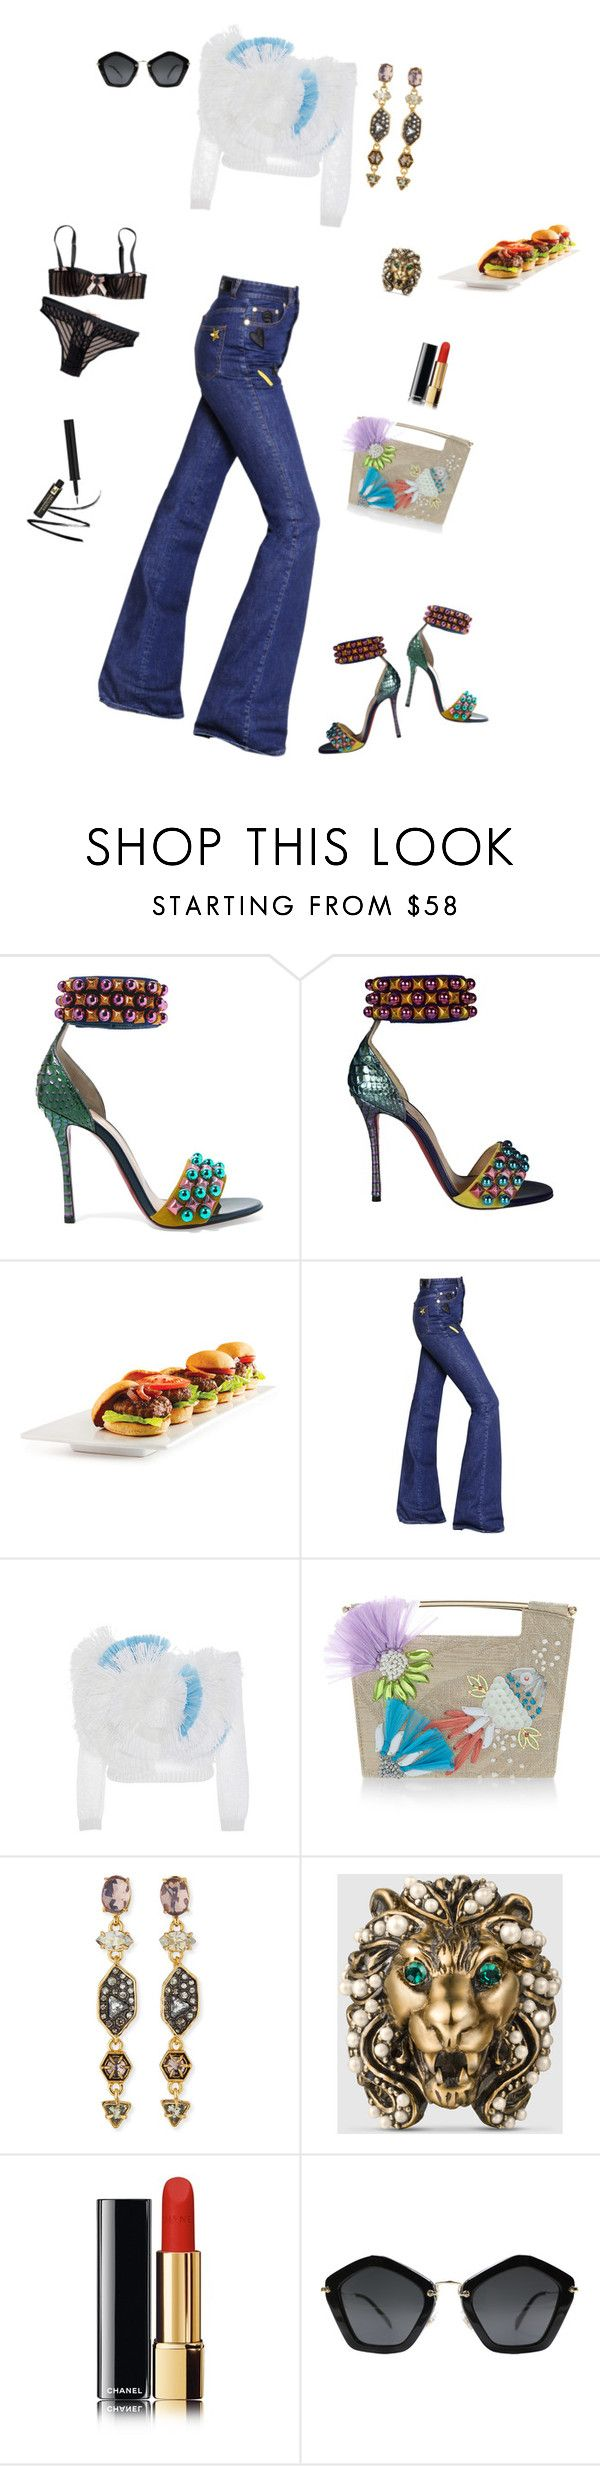 """""""Friday Funday!"""" by kitty1126 ❤ liked on Polyvore featuring Christian Louboutin, Sonia Rykiel, Delpozo, Alexis Bittar, Gucci and Miu Miu"""